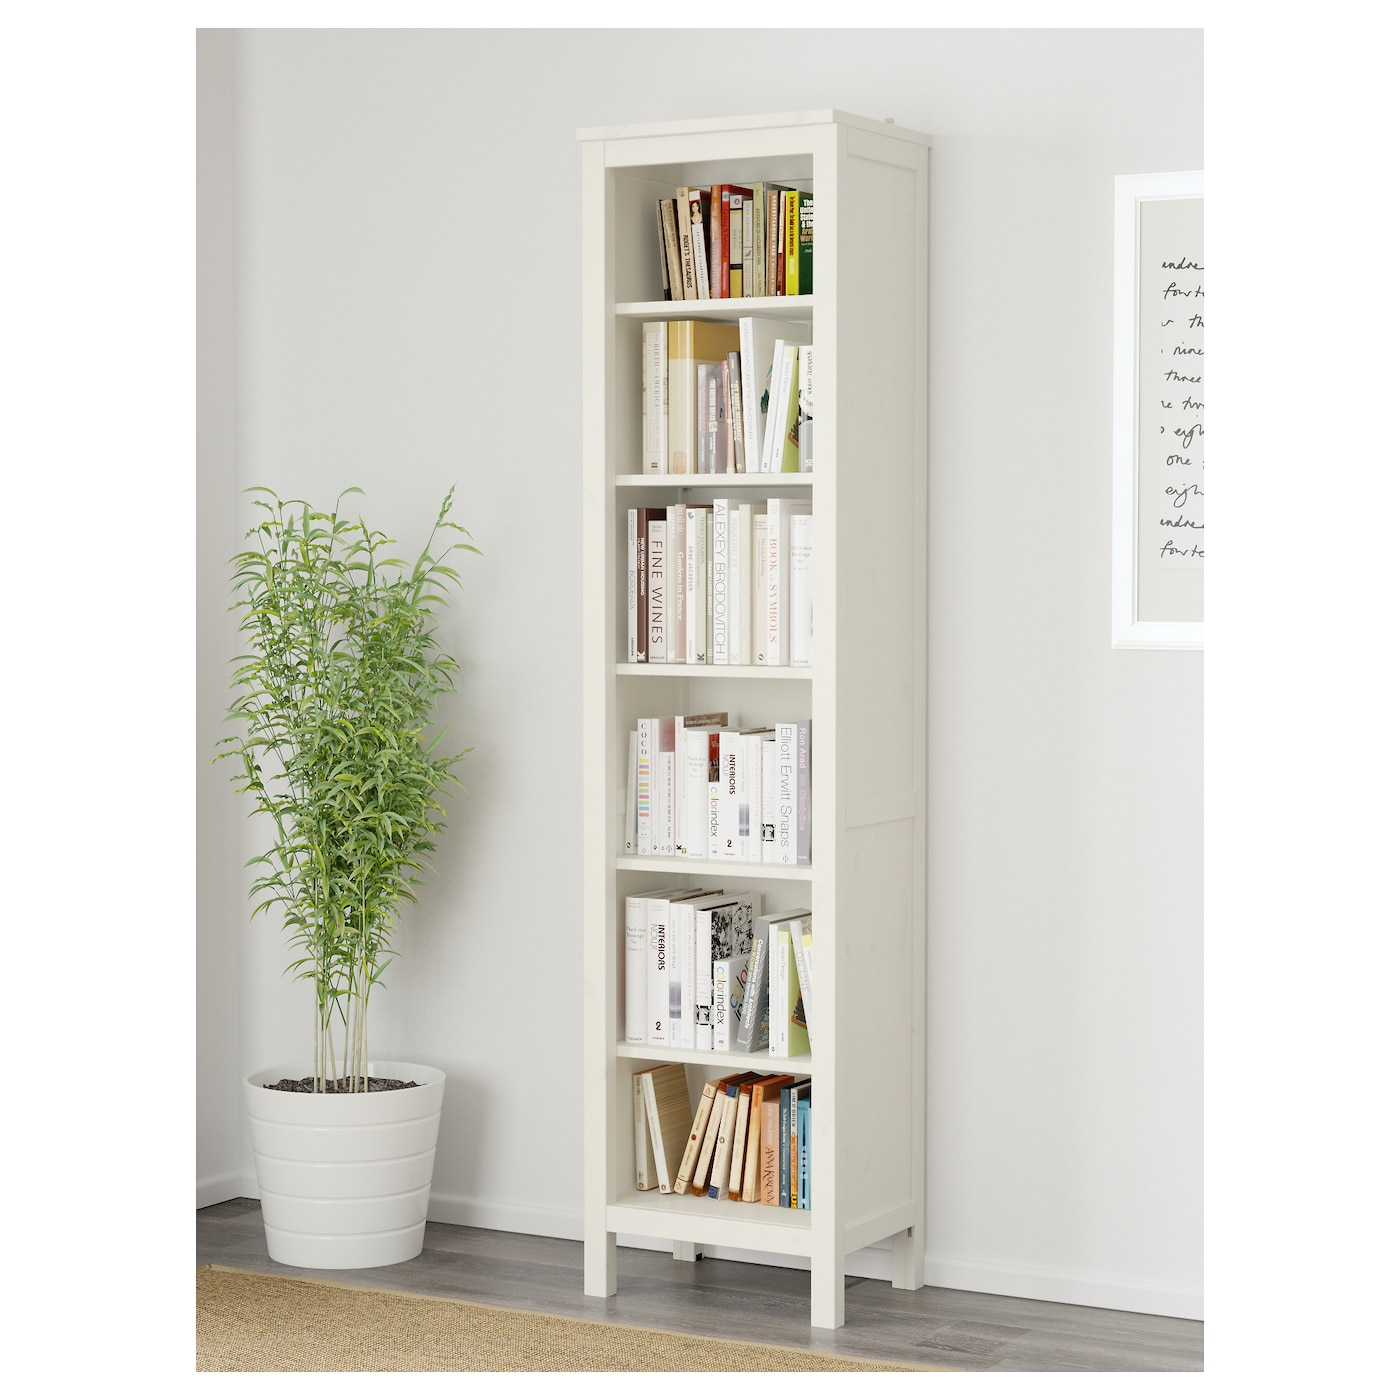 hemnes biblioth que teint blanc 49 x 197 cm ikea. Black Bedroom Furniture Sets. Home Design Ideas